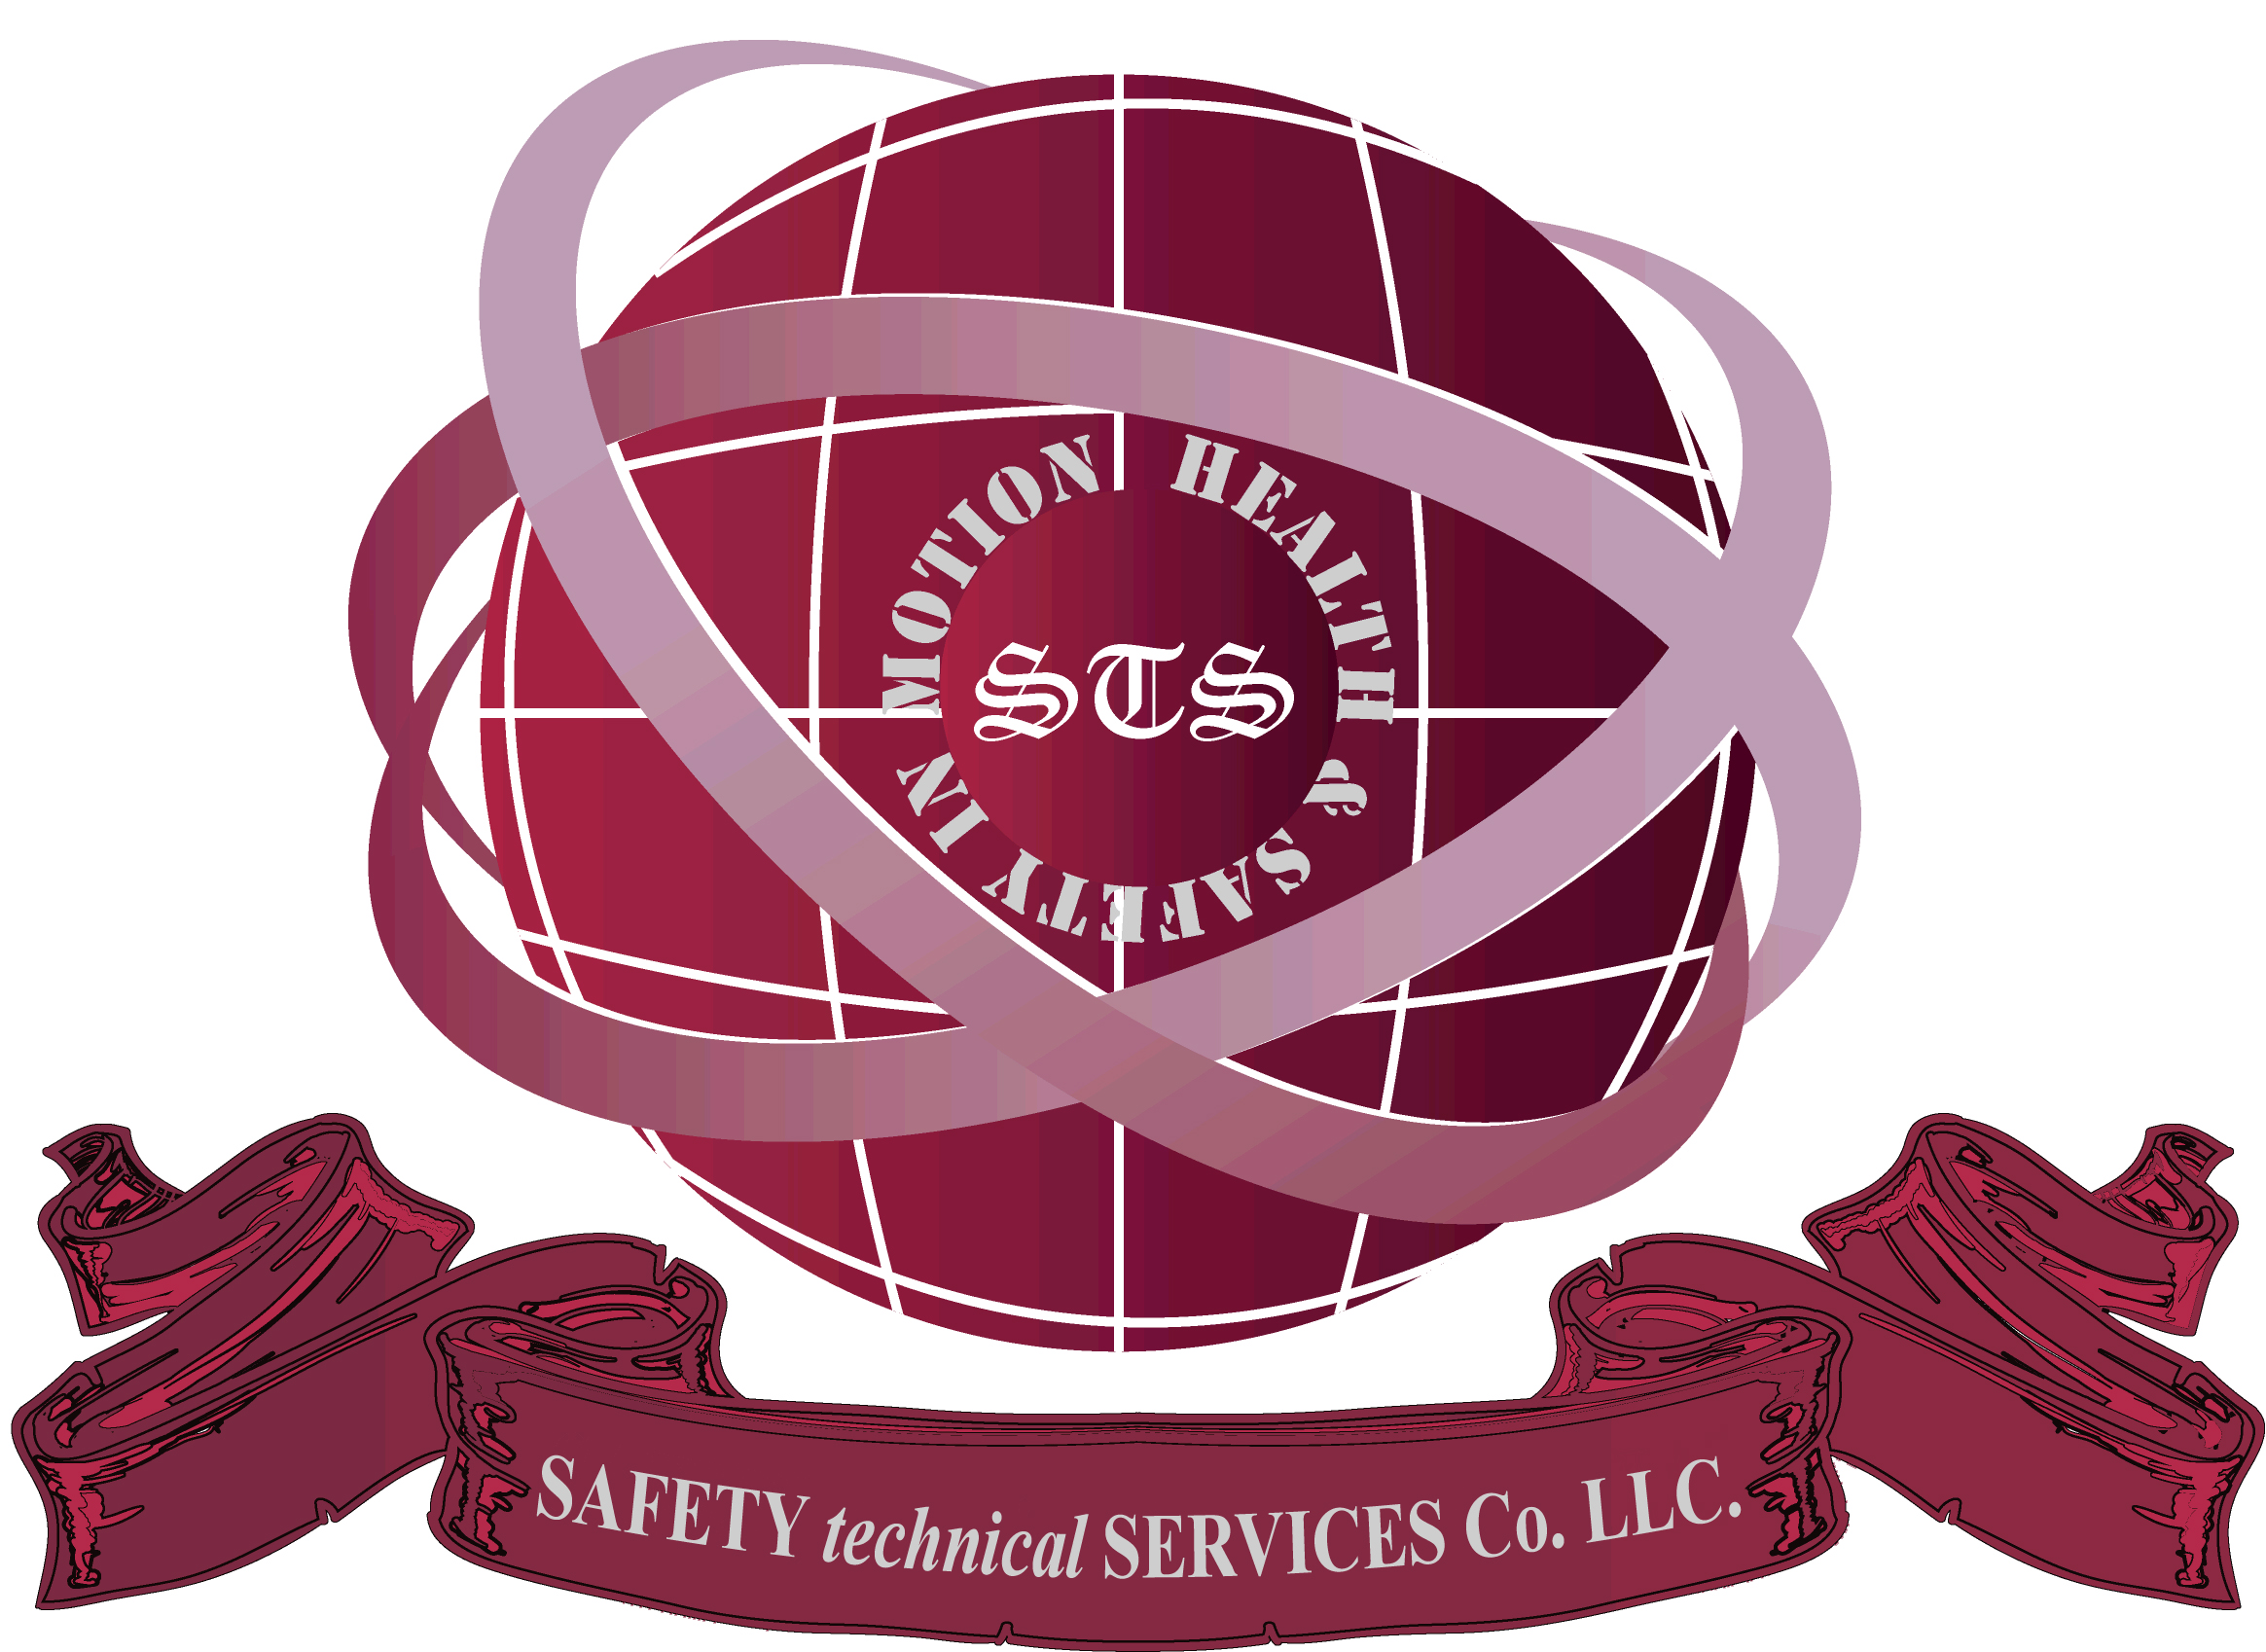 Safety Technical Services Ltd.